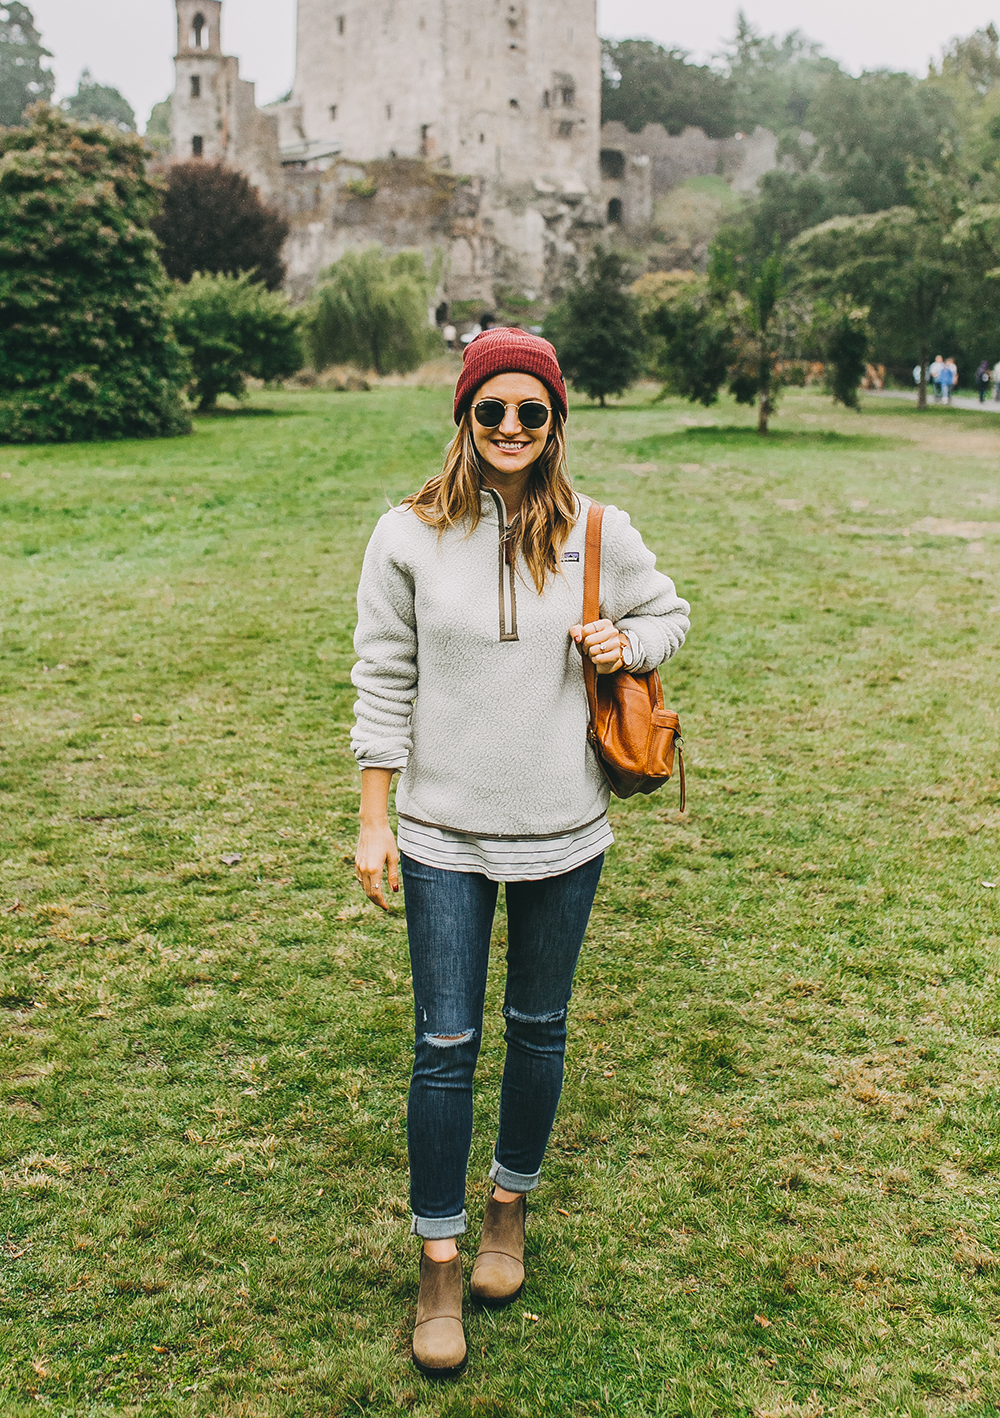 livvyland-blog-olivia-watson-austin-texas-fashion-lifestyle-travel-blogger-patagonia-retro-pile-fleece-pullover-backcountry-outfit-blarney-castle-cork-ireland-7